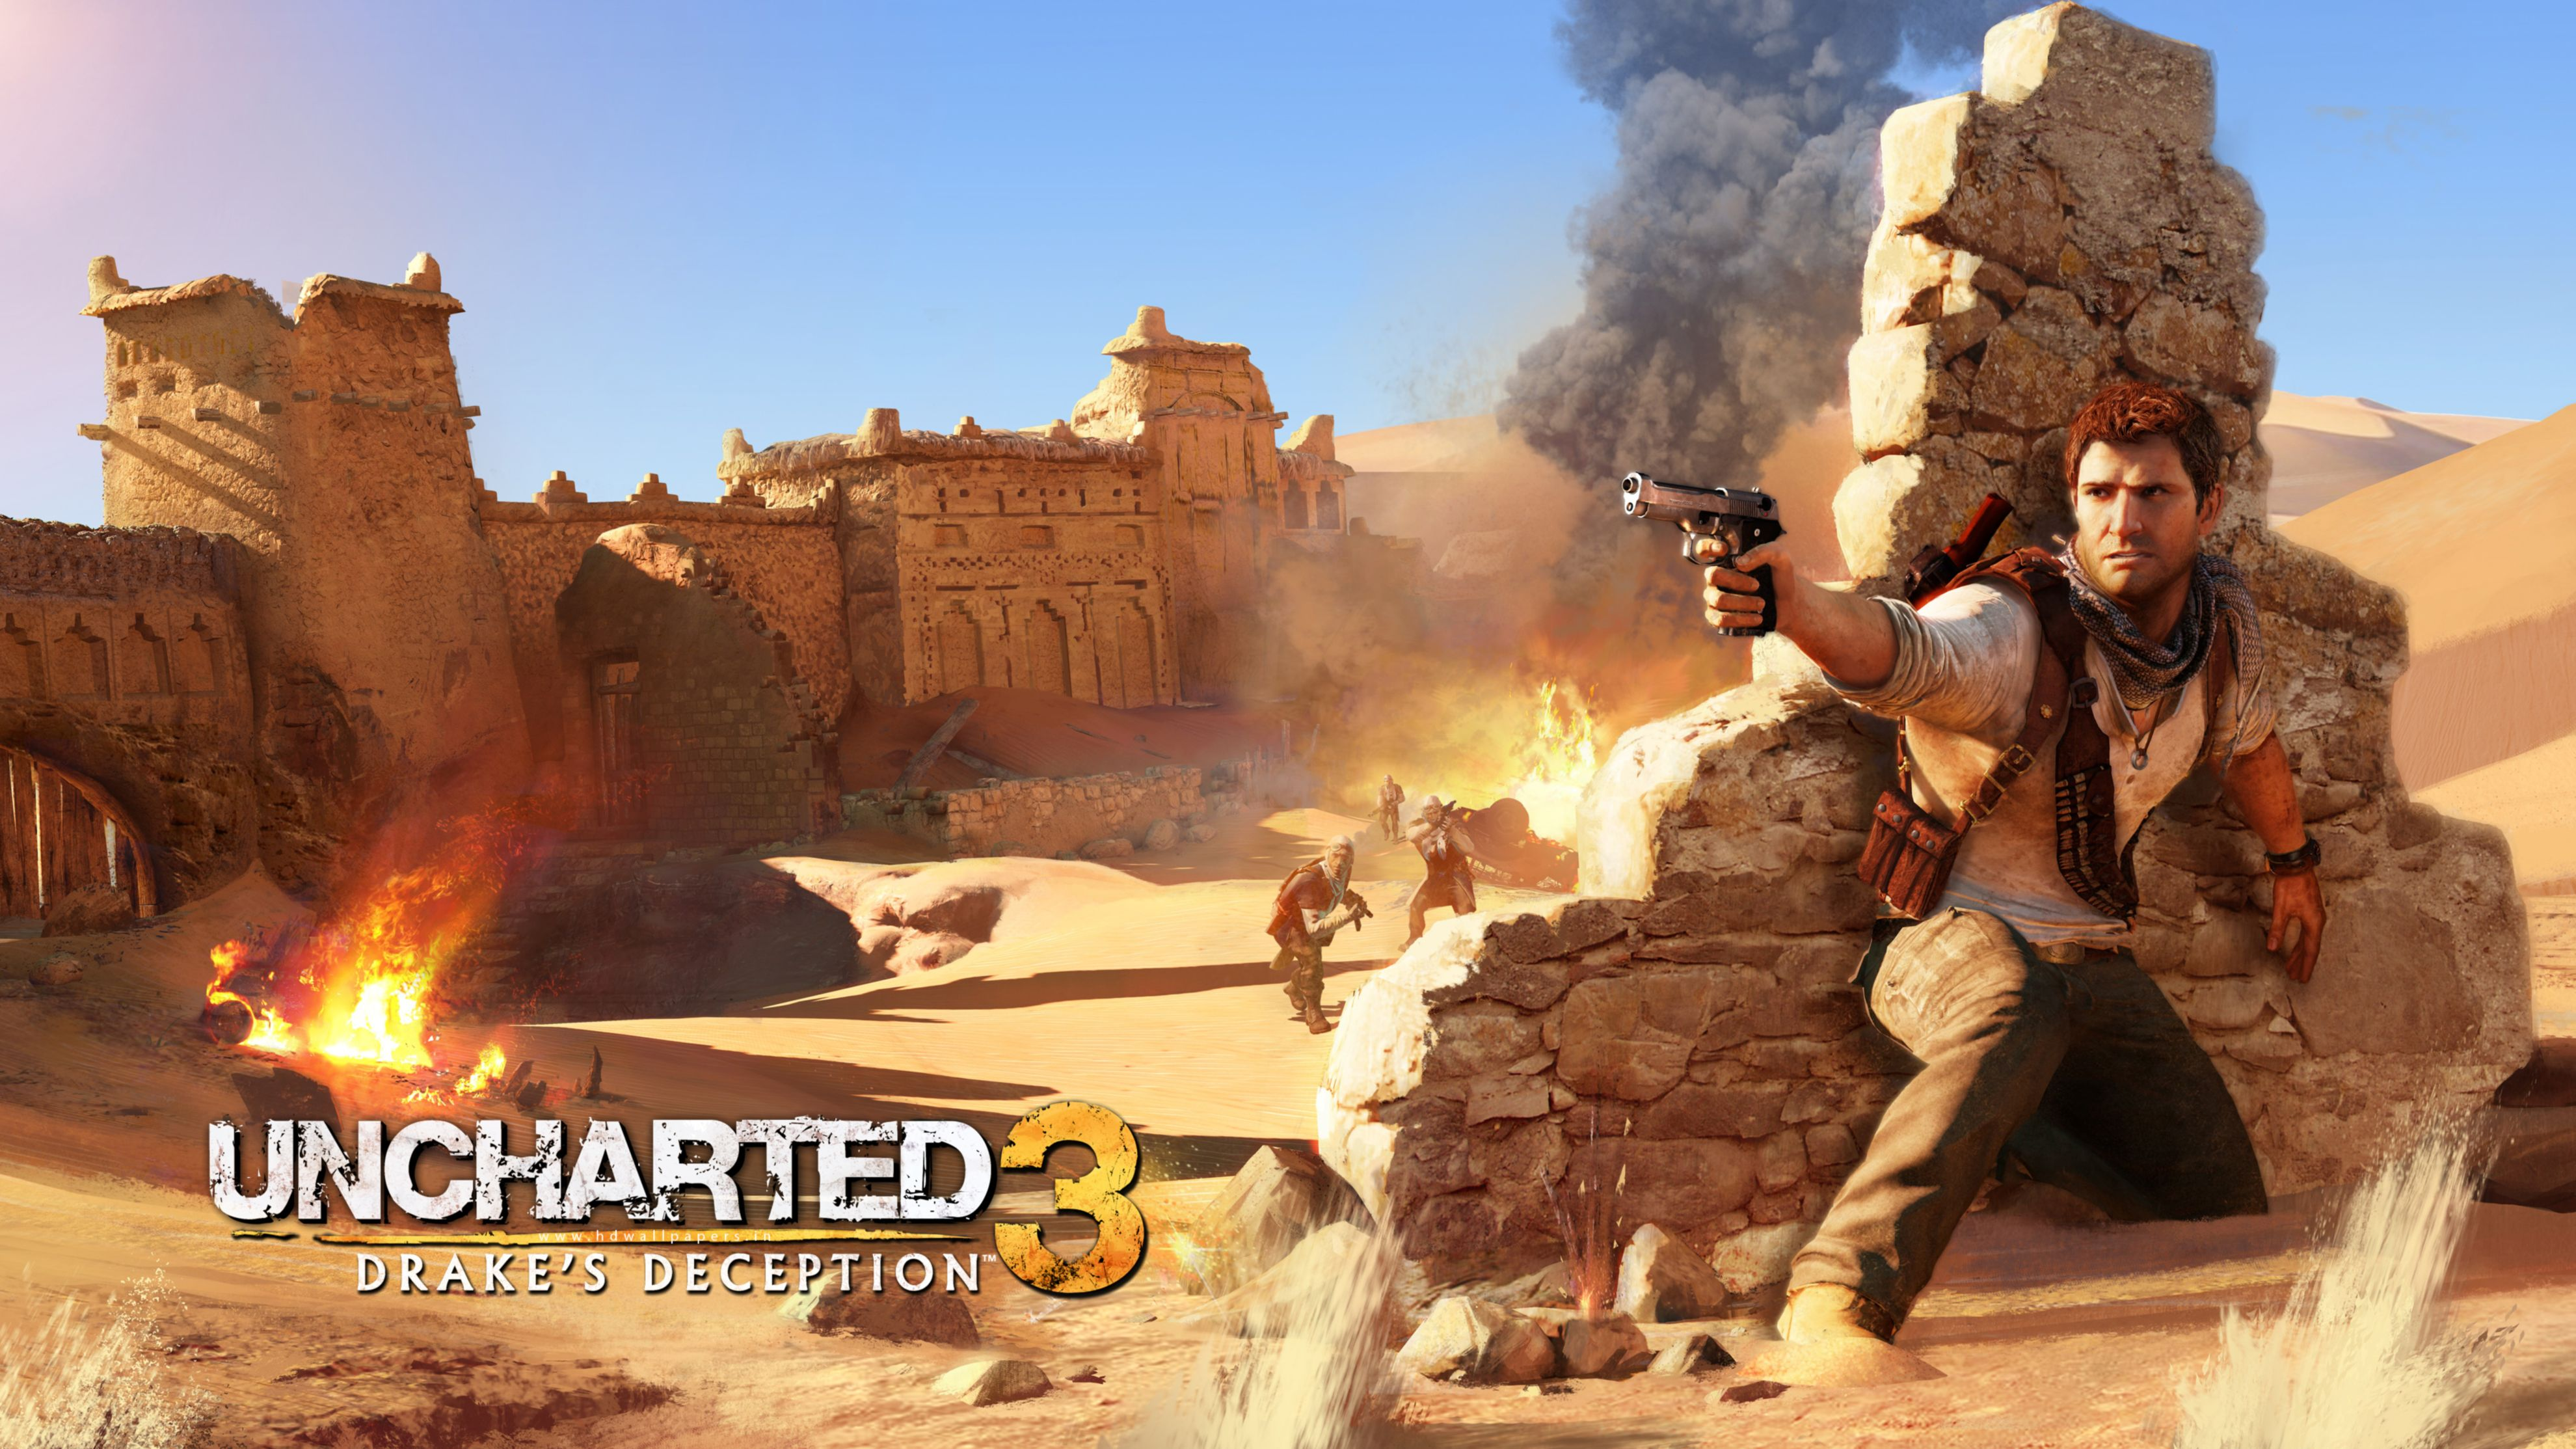 Download free HD Drake in Uncharted 3 HD Wallpaper, image